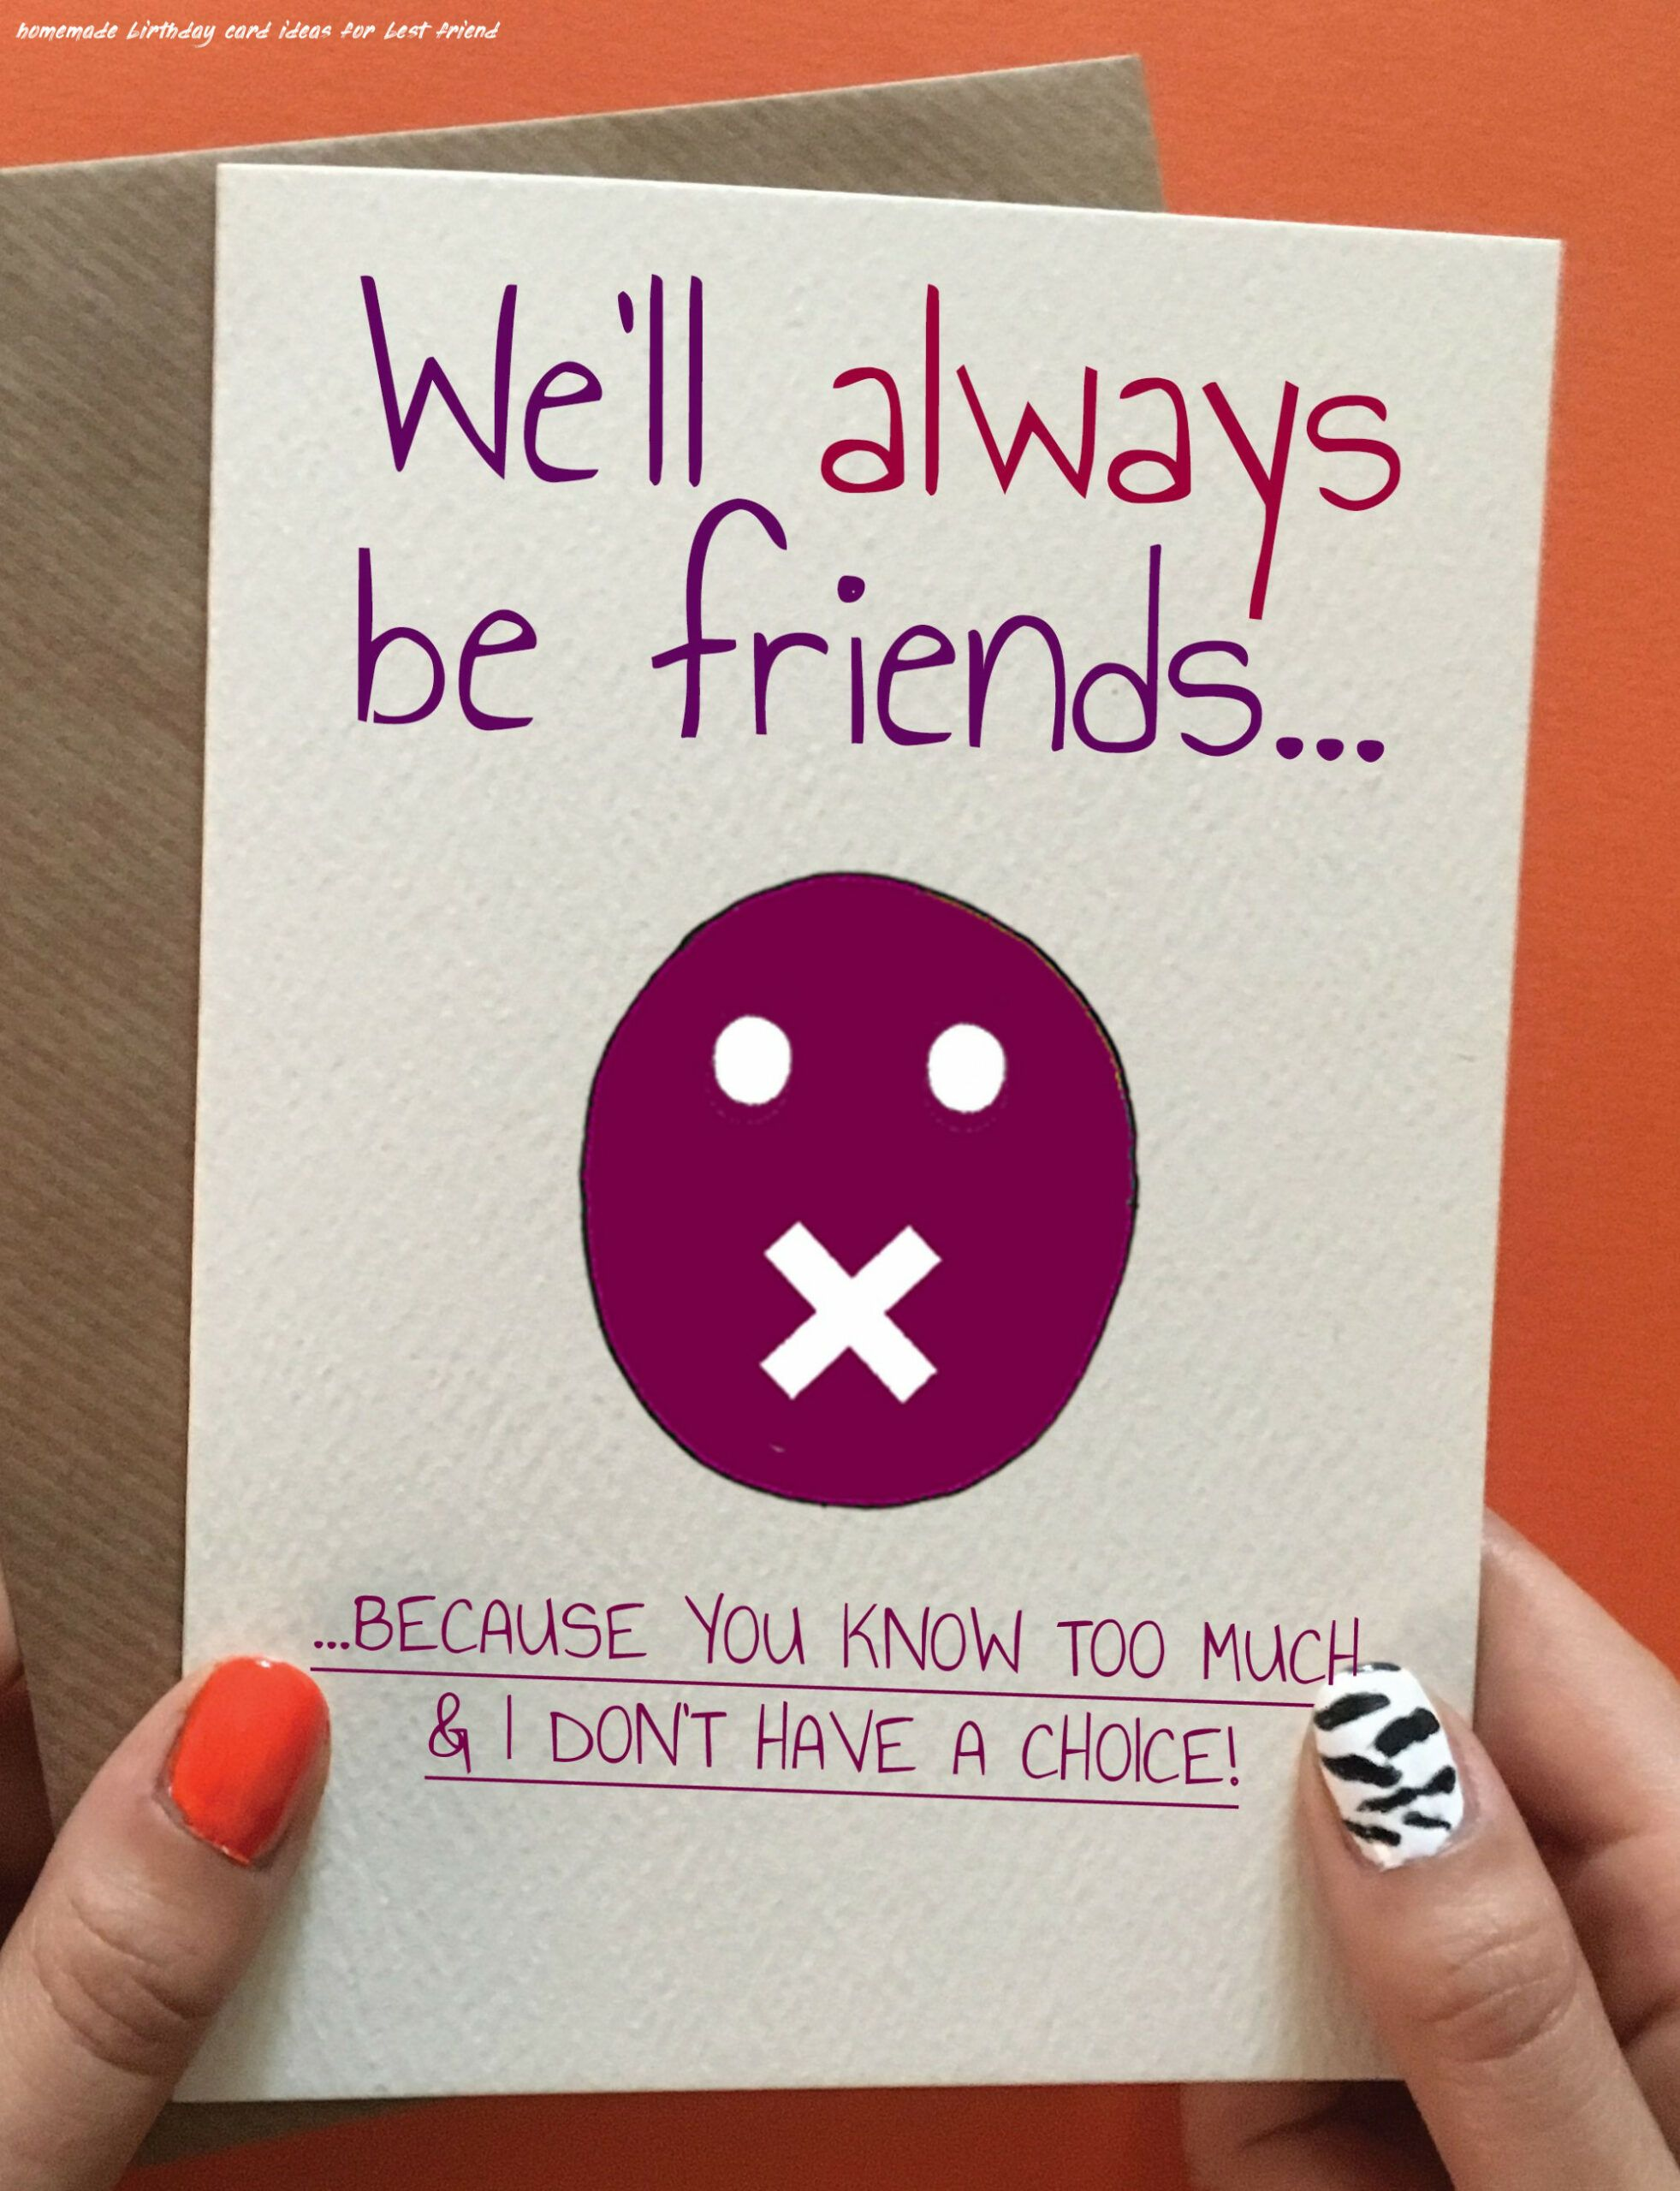 8 Homemade Birthday Card Ideas For Best Friend Funny Birthday Cards Birthday Cards For Friends Friend Birthday Gifts